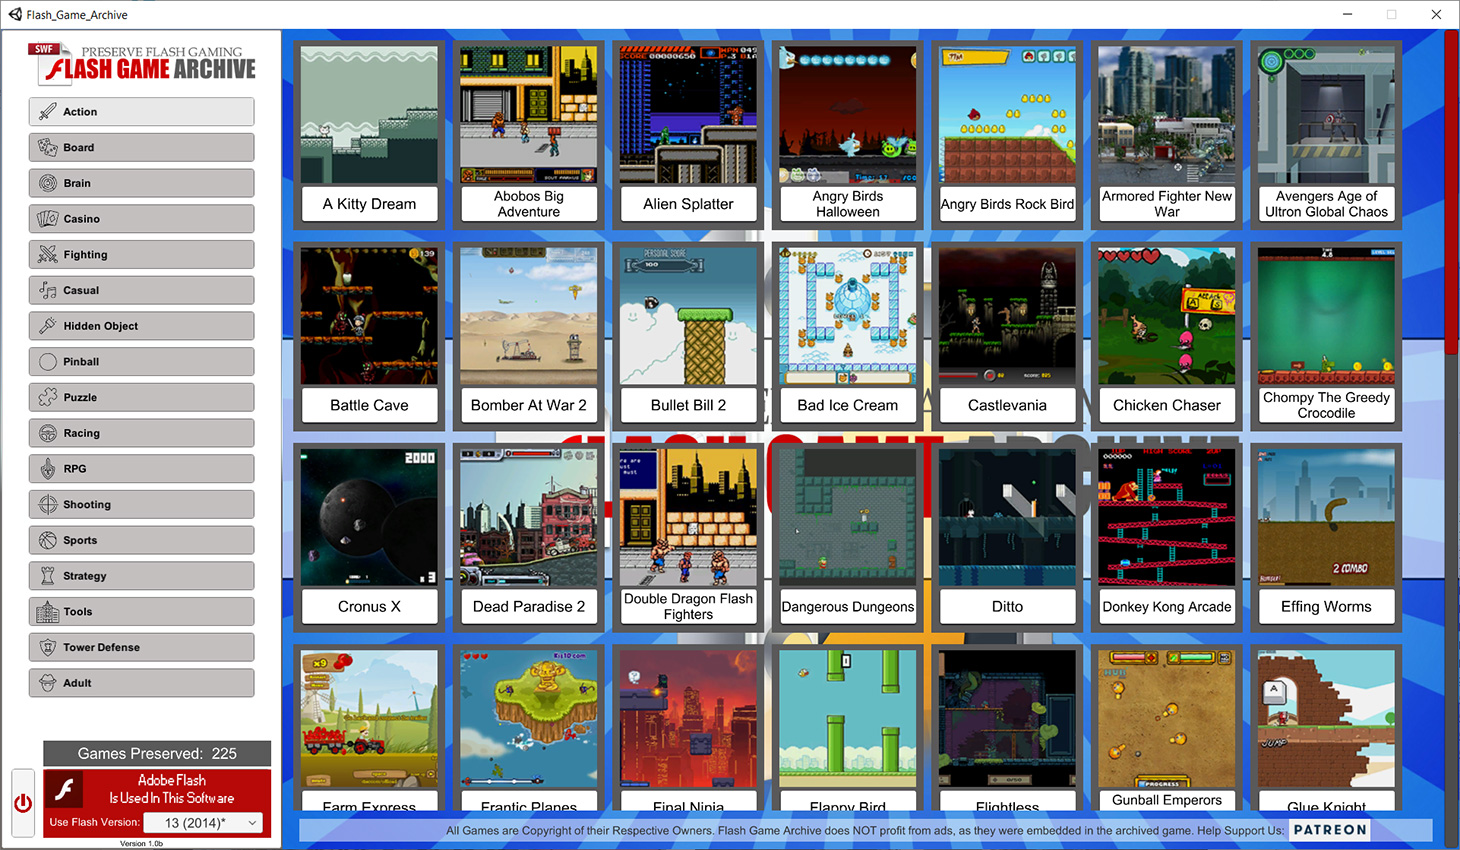 Flash Game Archive – Preserve Flash Gaming